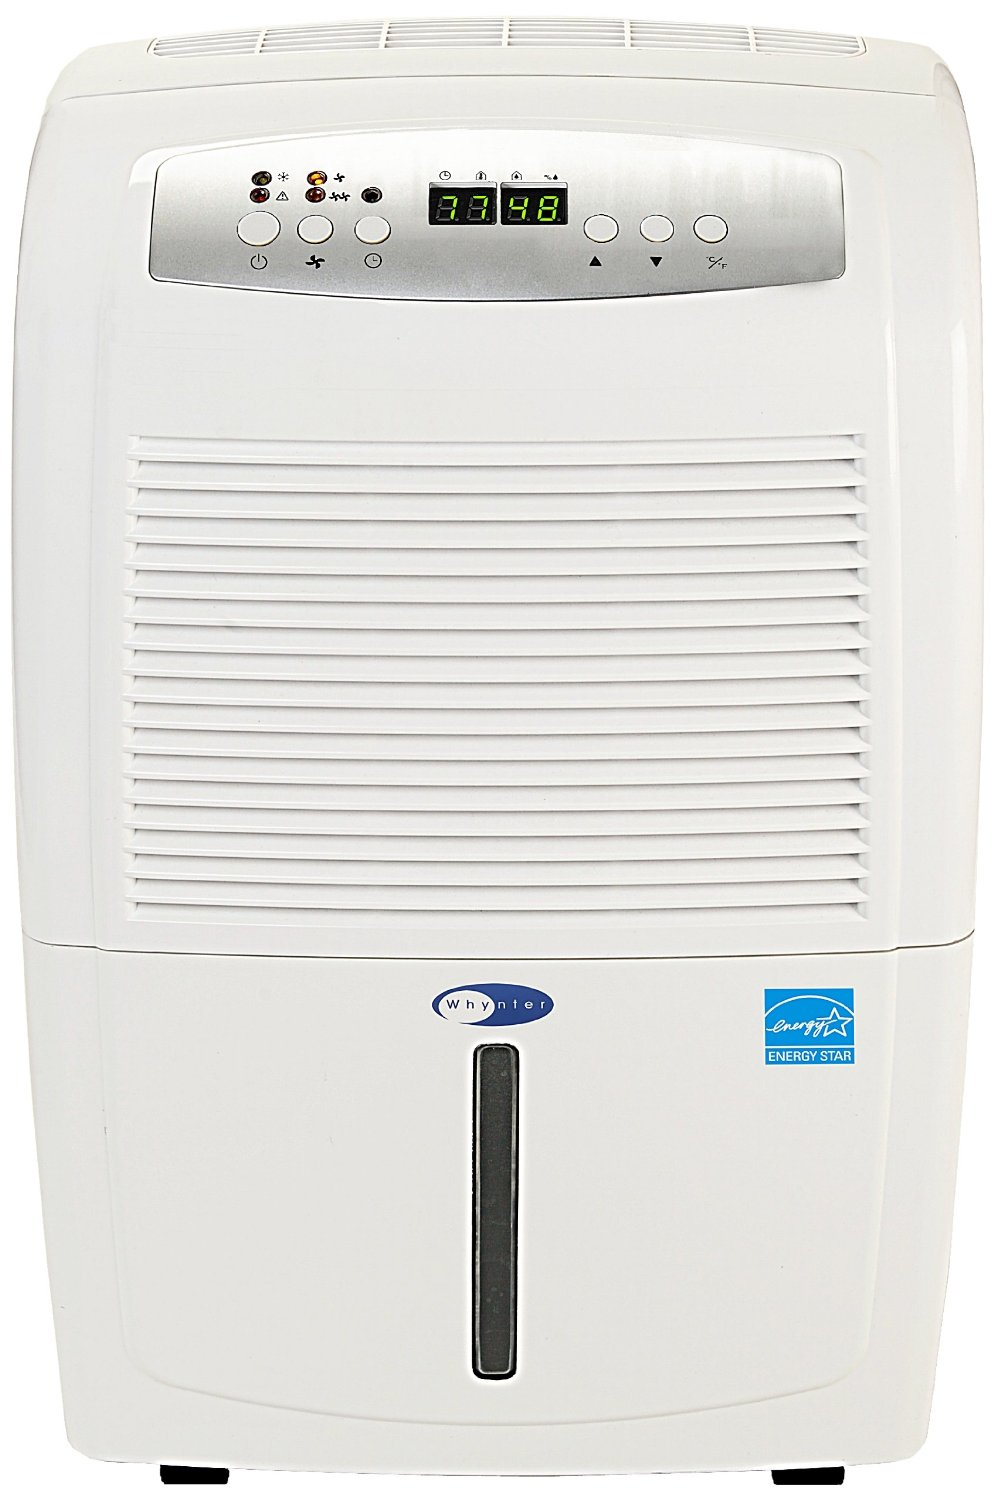 Whynter RPD 702WP Energy Star Portable Dehumidifier with Pump  70 Pint. Top 5 Best Dehumidifier with Pump and Reviews 2017